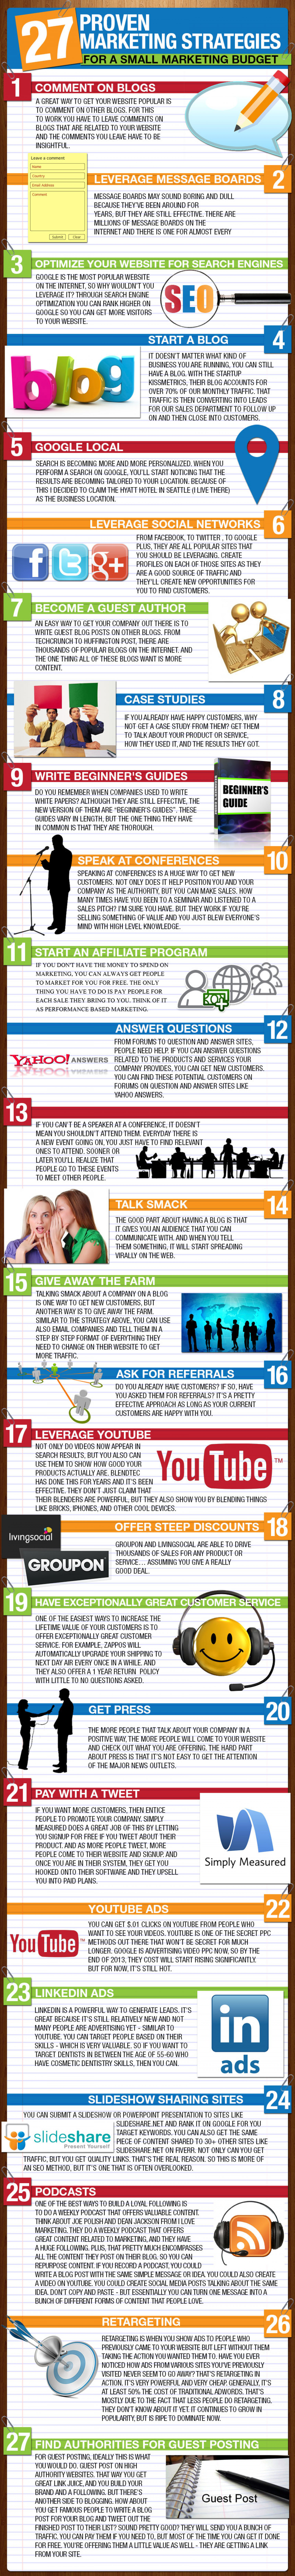 27 Proven Marketing Strategies to Double Your Traffic in Under 30 Days Infographic